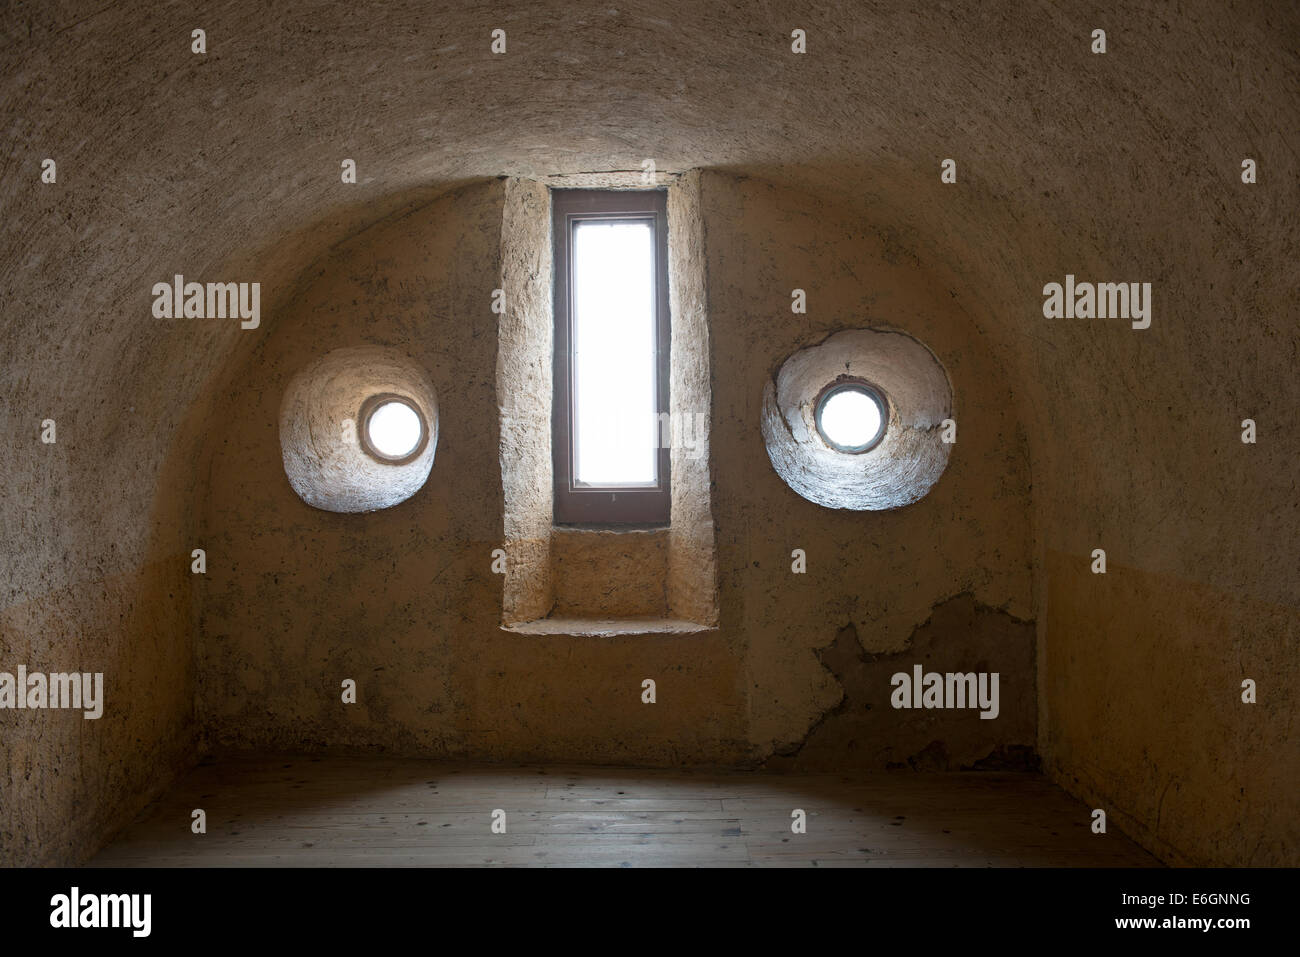 Interiors of the Vianden castle in luxembourg - Stock Image